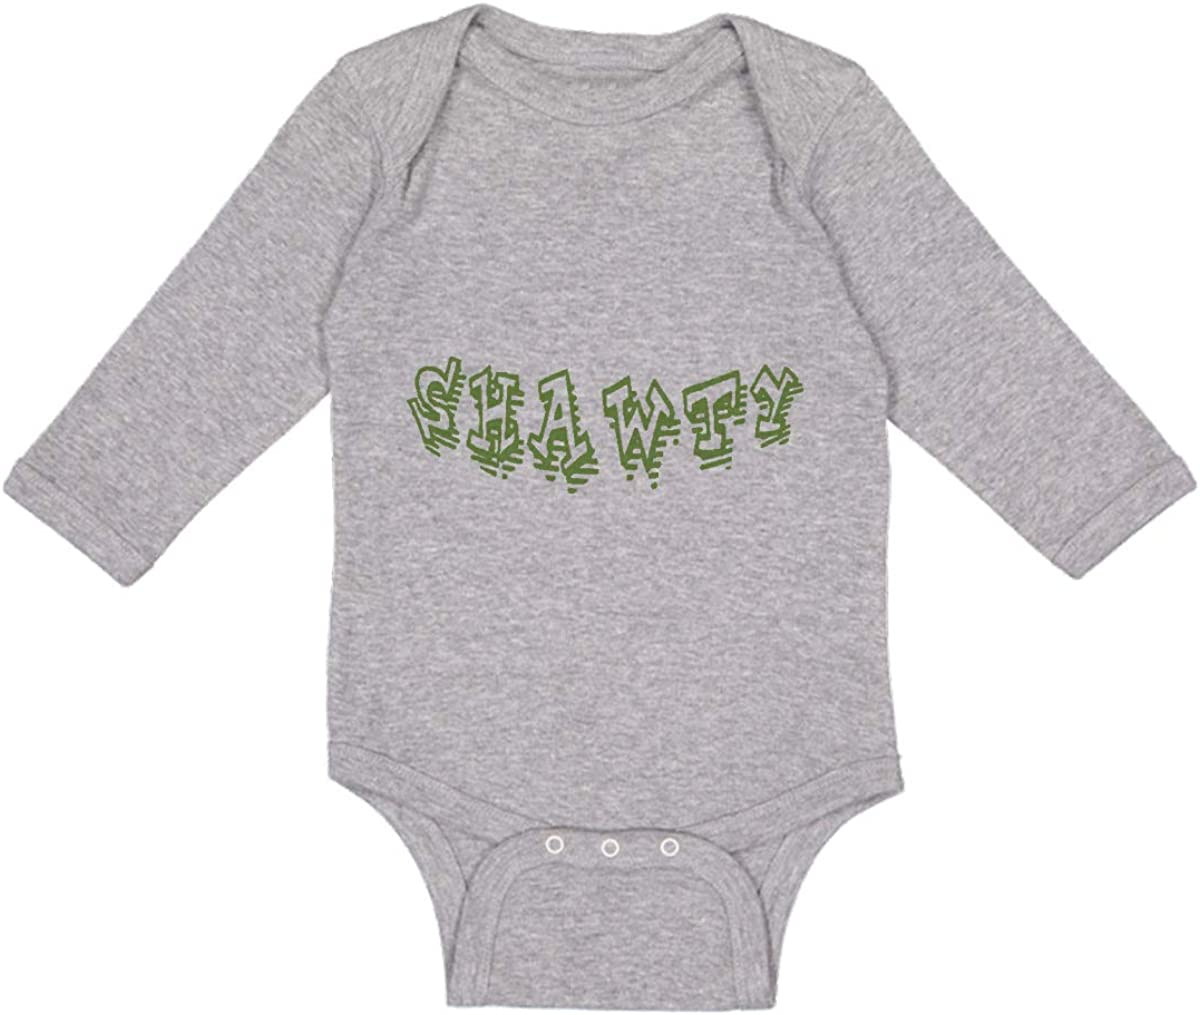 GR010451 Bodysuits /'Squirrel In Clothing/' Baby Grows